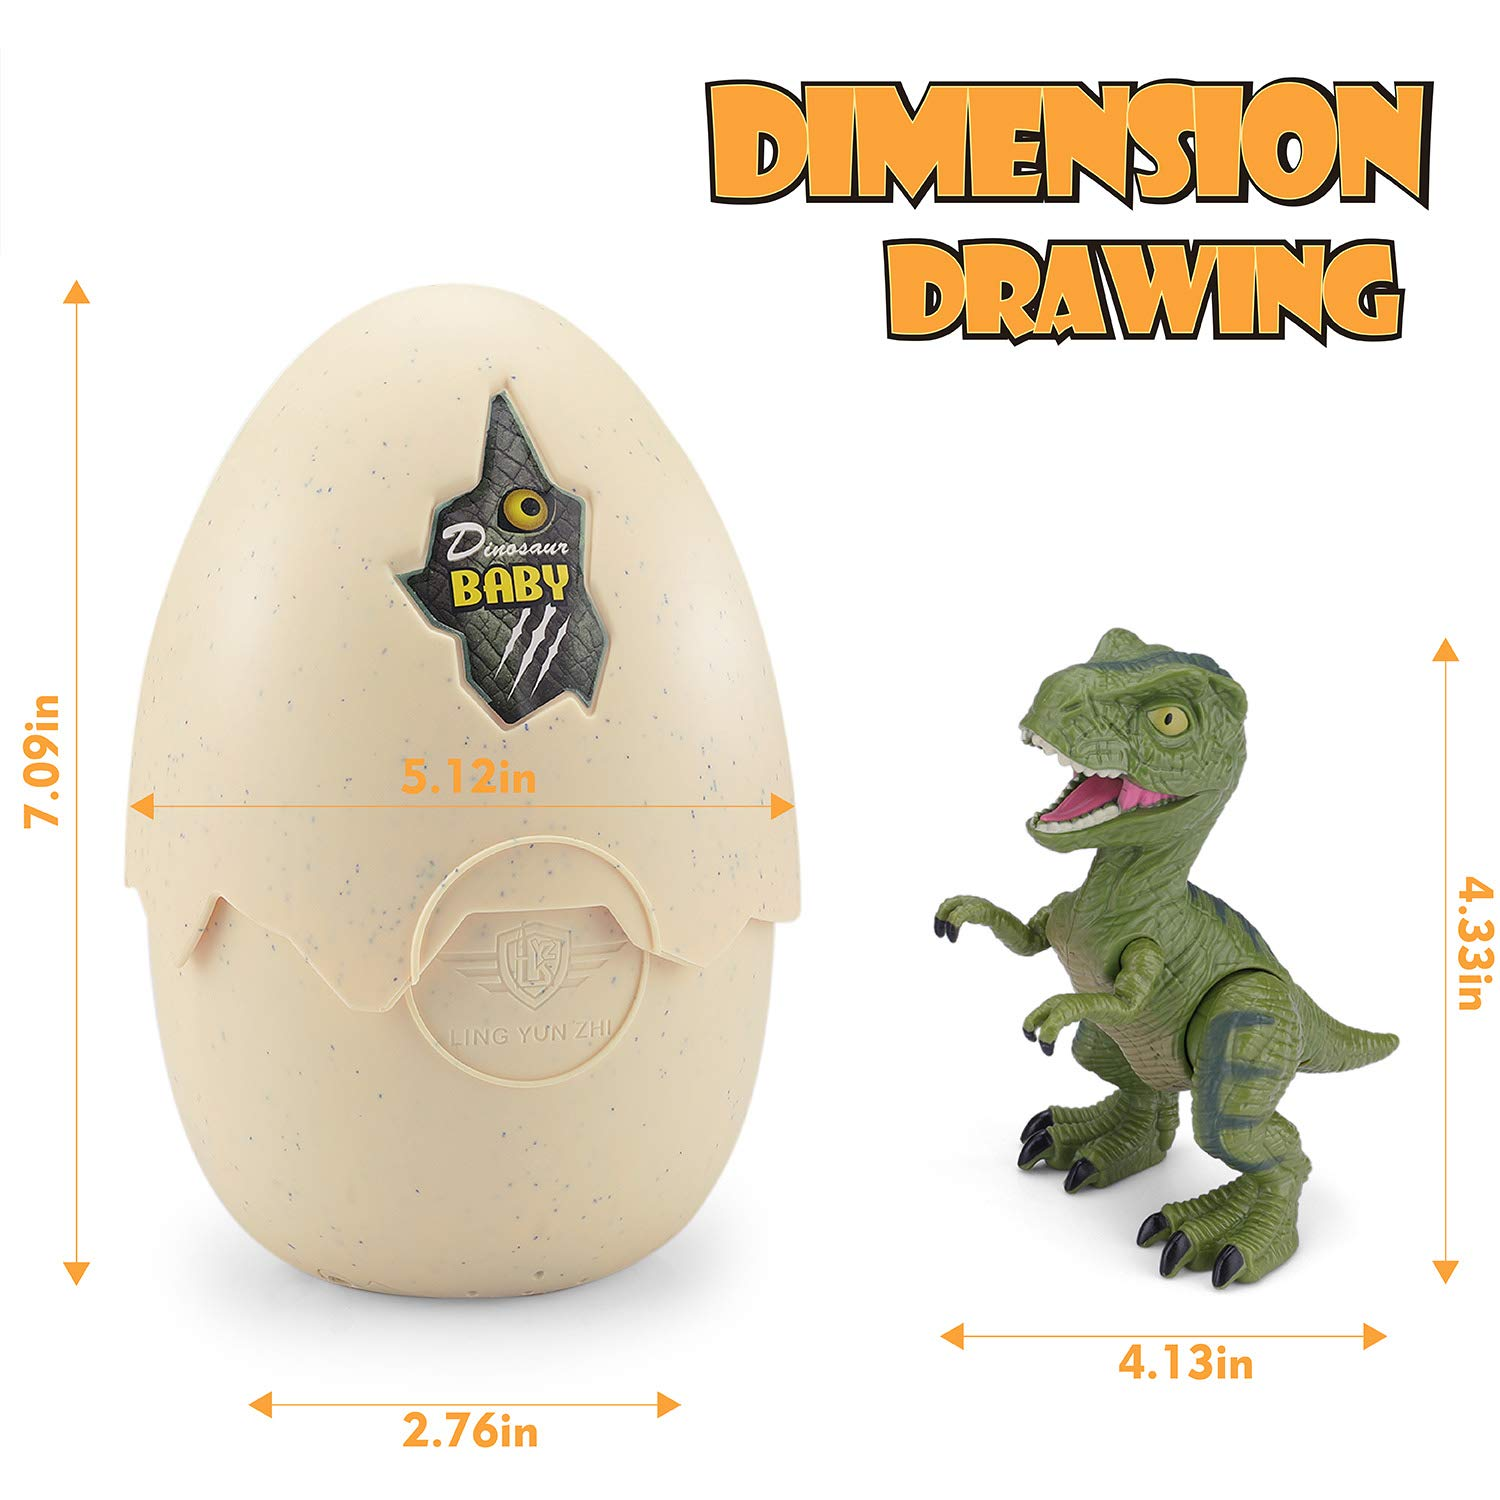 EPE TOP Hatching Egg Dinosaur Toy Sound and LED Lights Effect Novelty Educational Toy Easter Party Favors Gift for Kids Boys Girls Dinosaur Eggs That Hatch with Realistic Dinosaur Action Figure